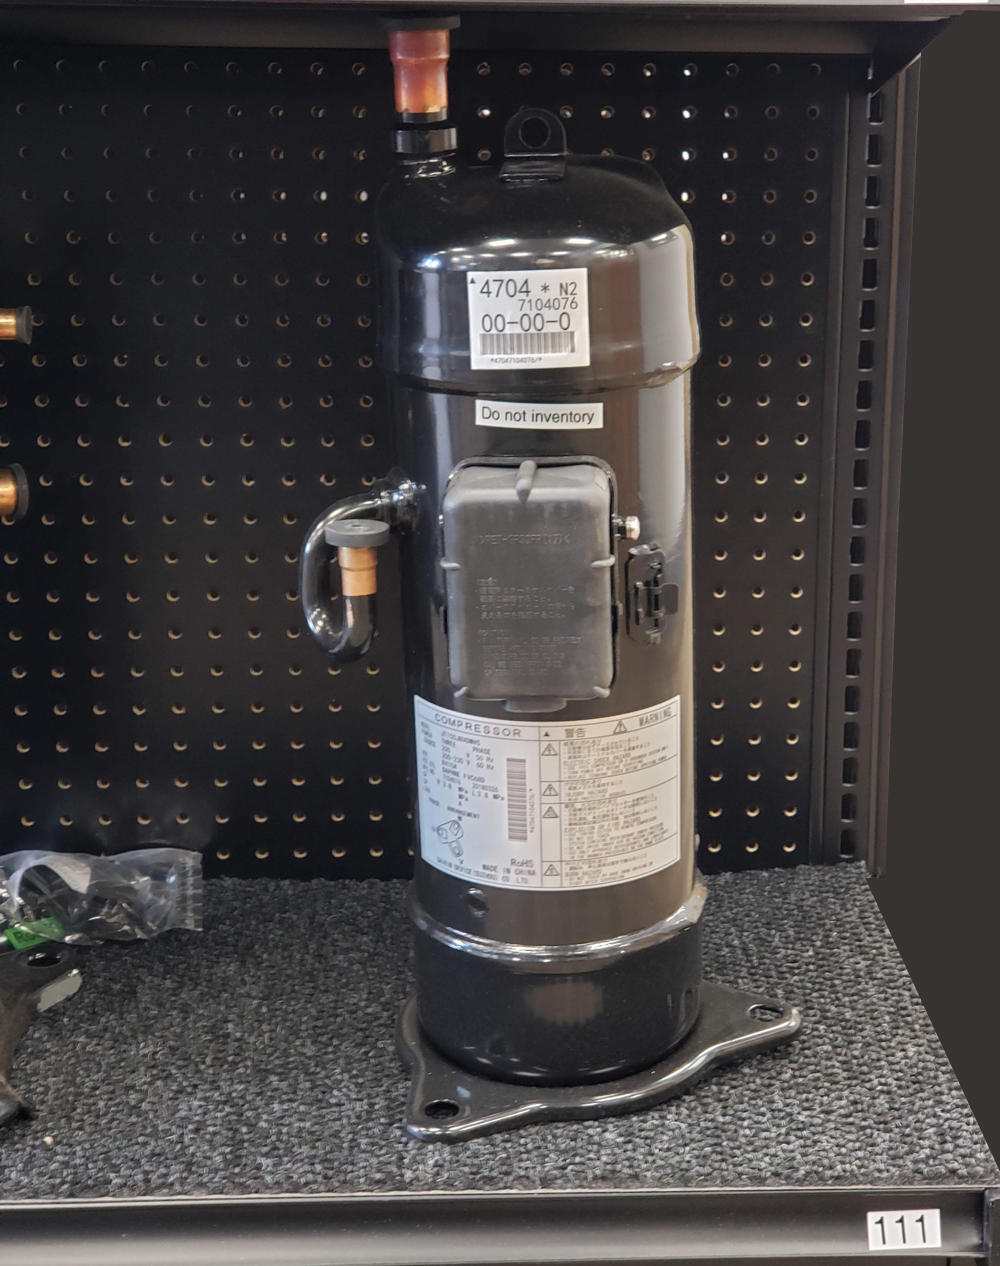 VRV inverter scroll compressor